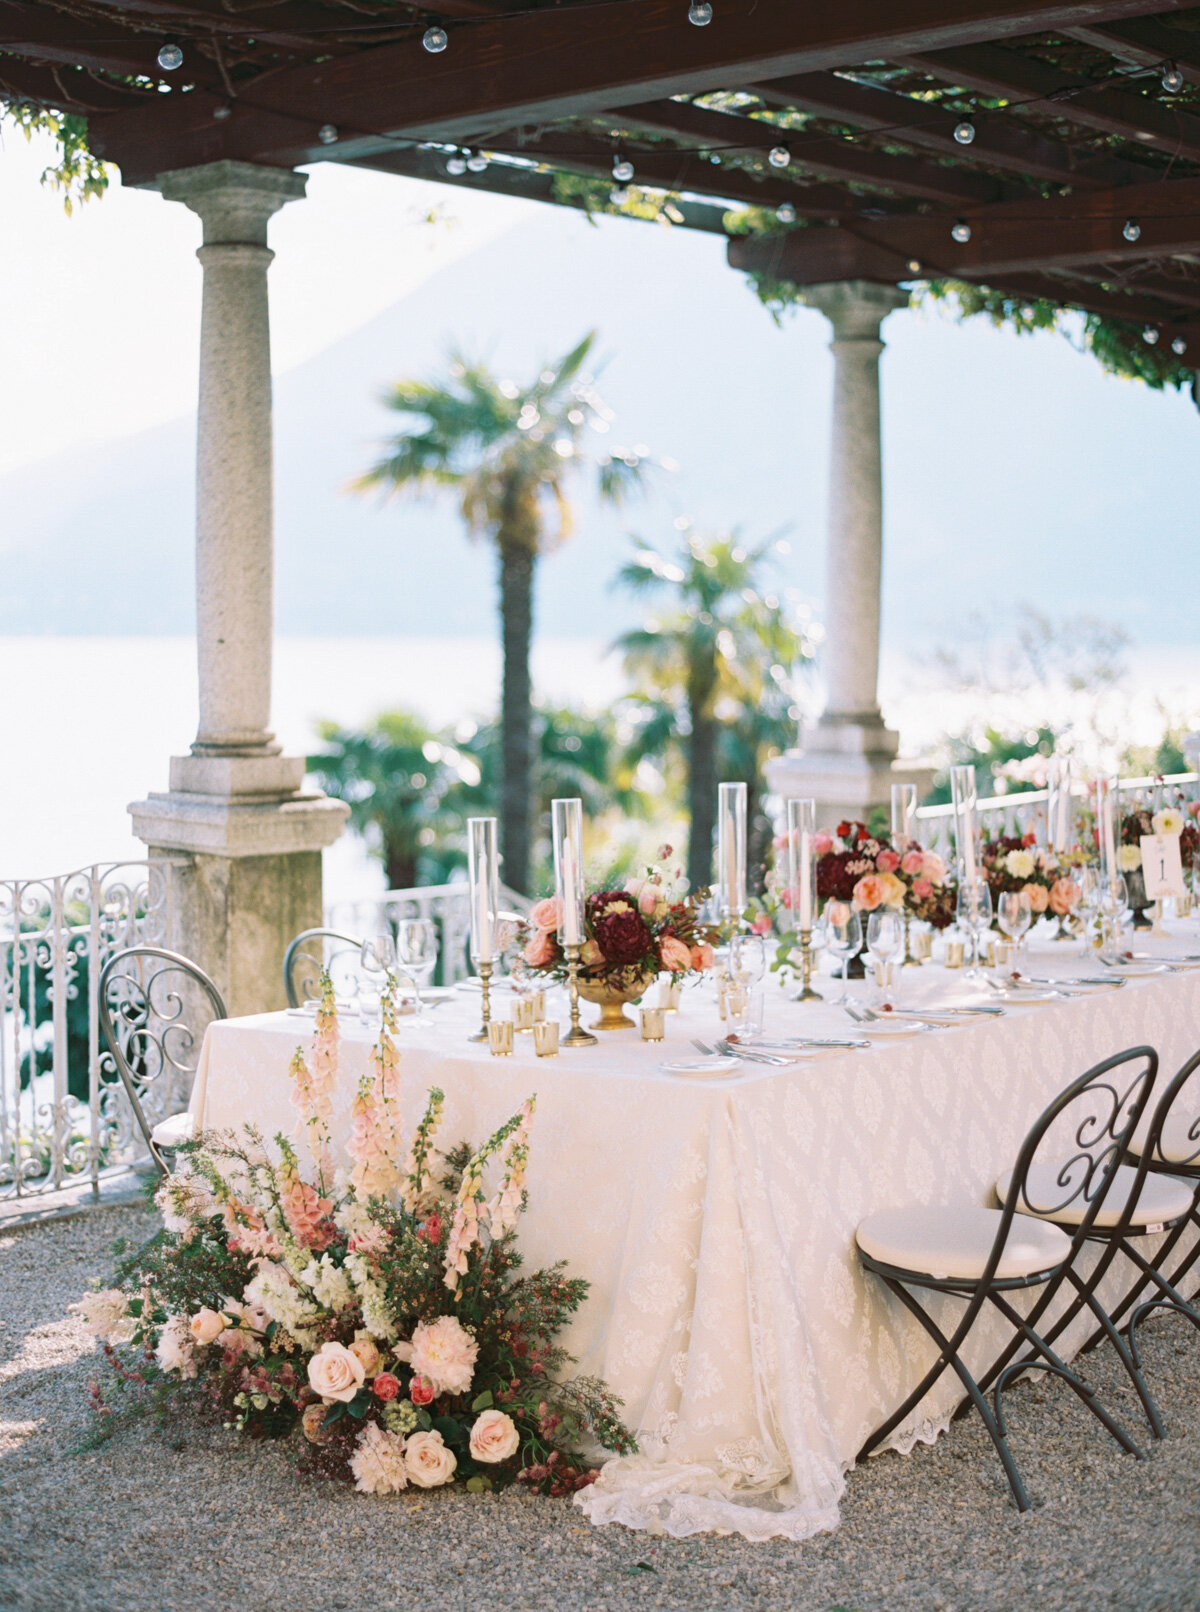 Lake-Como-Villa-Cipressi-Wedding-Katie-Grant-destination-wedding (71 of 93).jpg